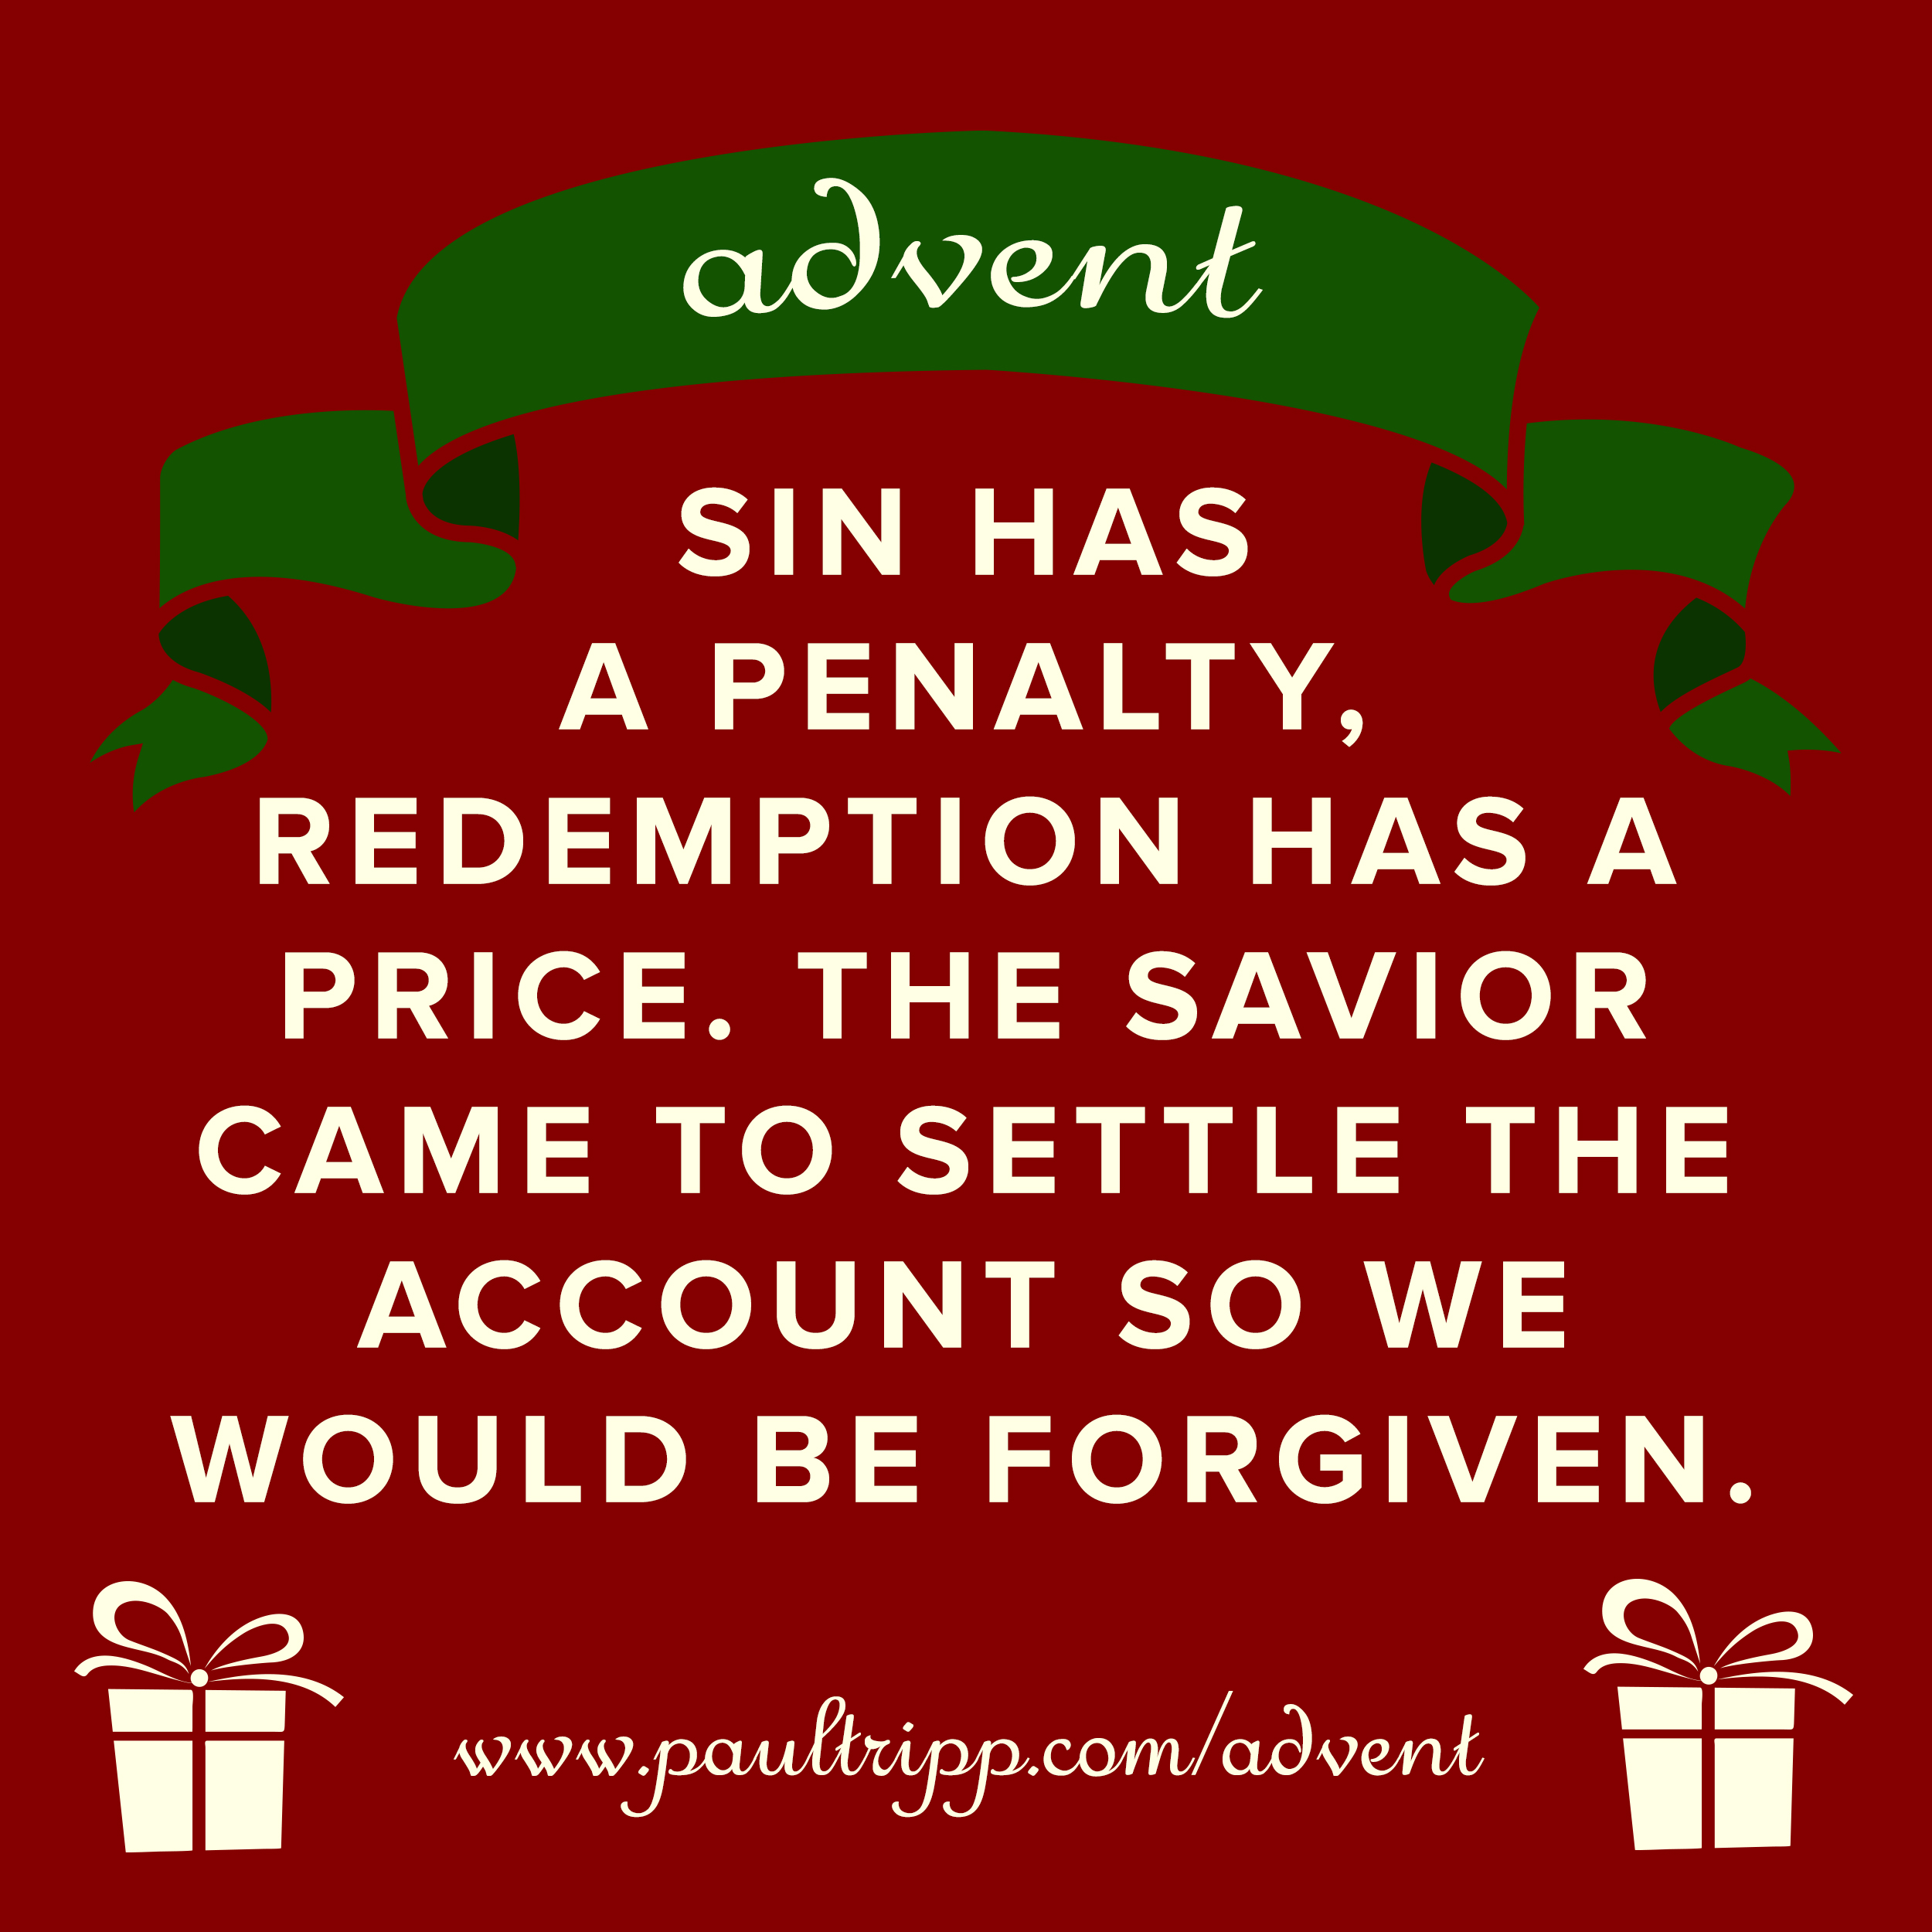 Quotes From The Bible: Advent Quotes From The Bible. QuotesGram